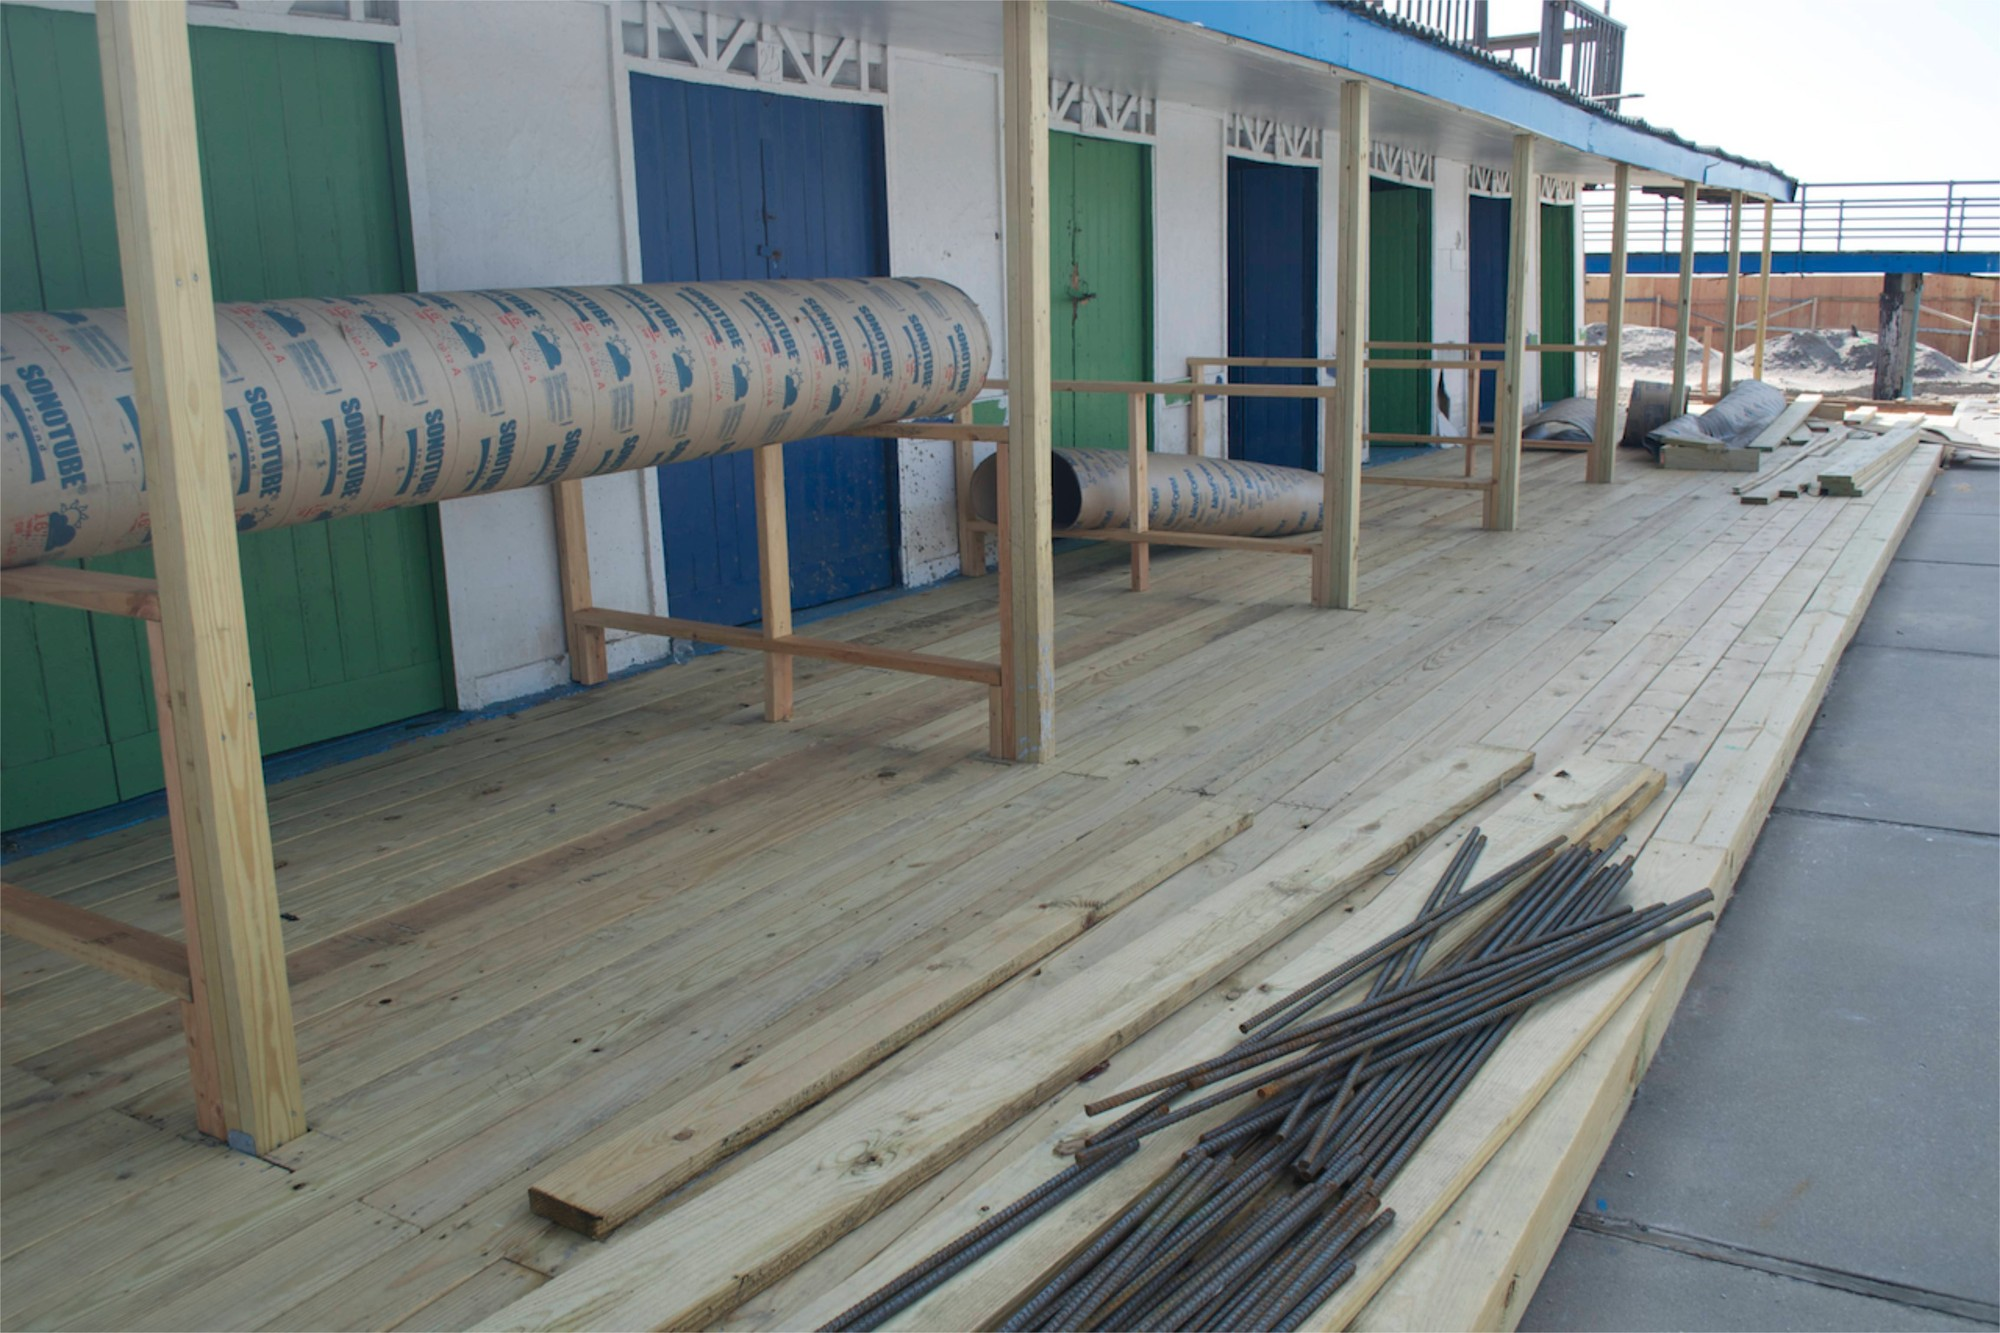 Since January, The Shores has been in rebuilding mode, renovating its damaged cabanas in order to open as scheduled on Memorial Day weekend.